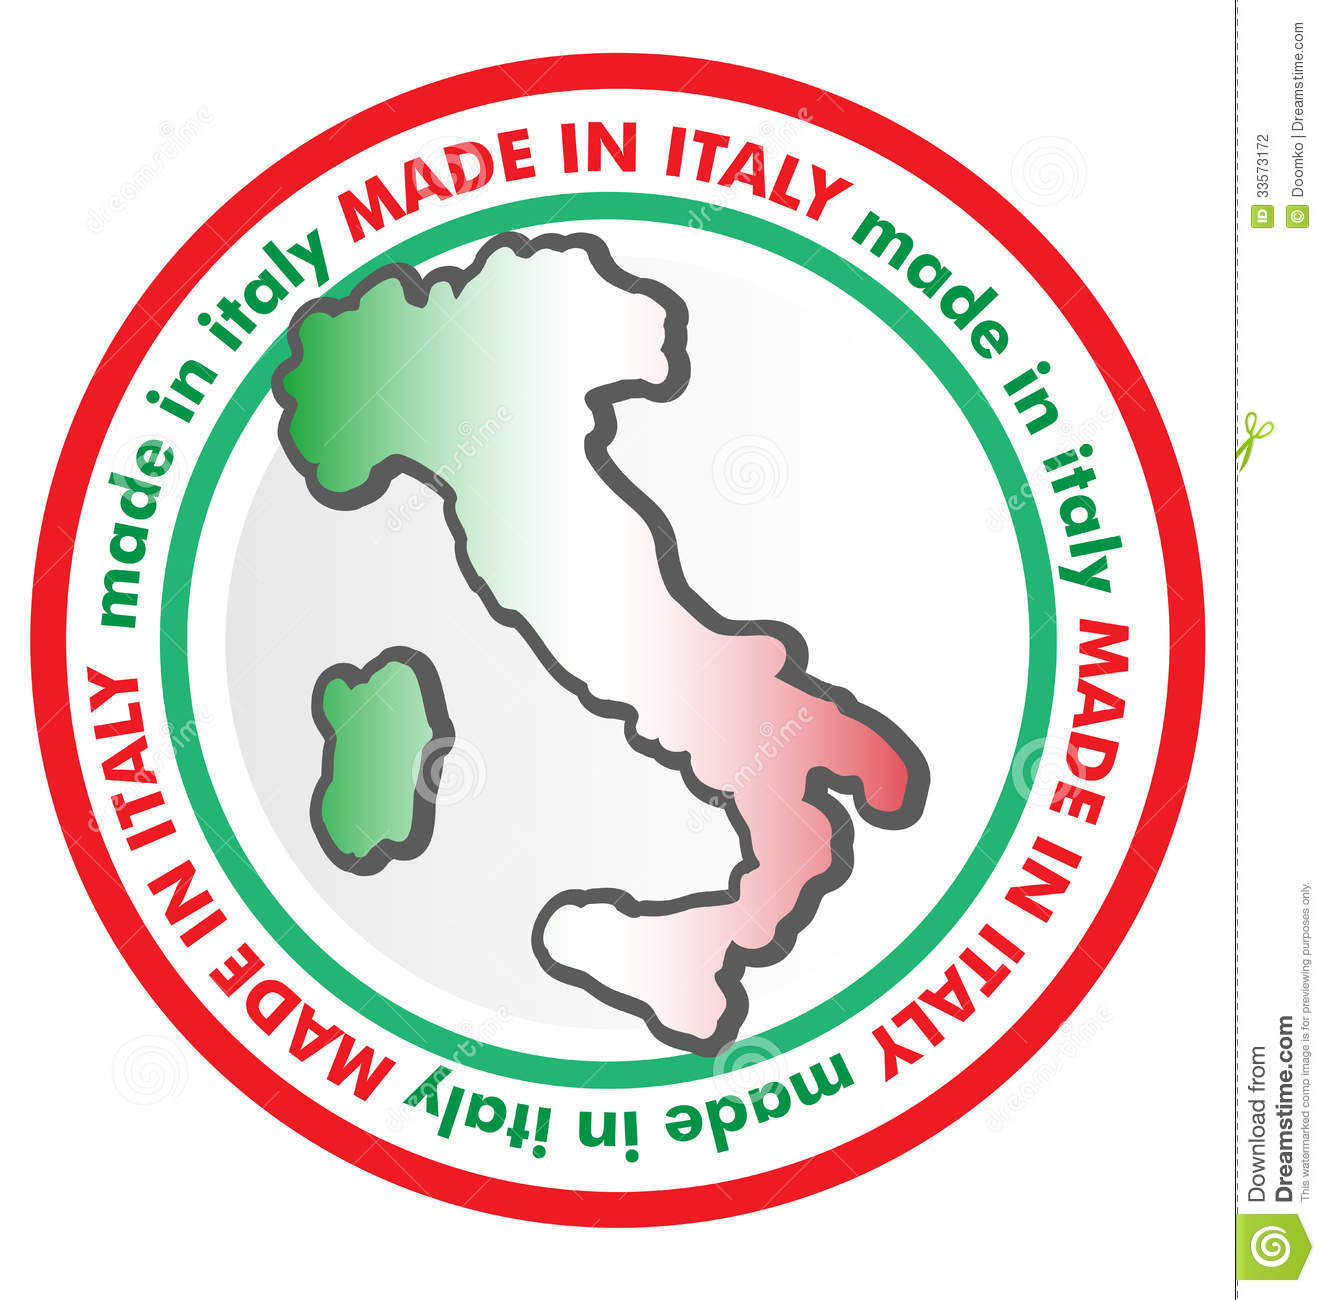 Made in italy symbol stock photography image 33573172 for Made com italia